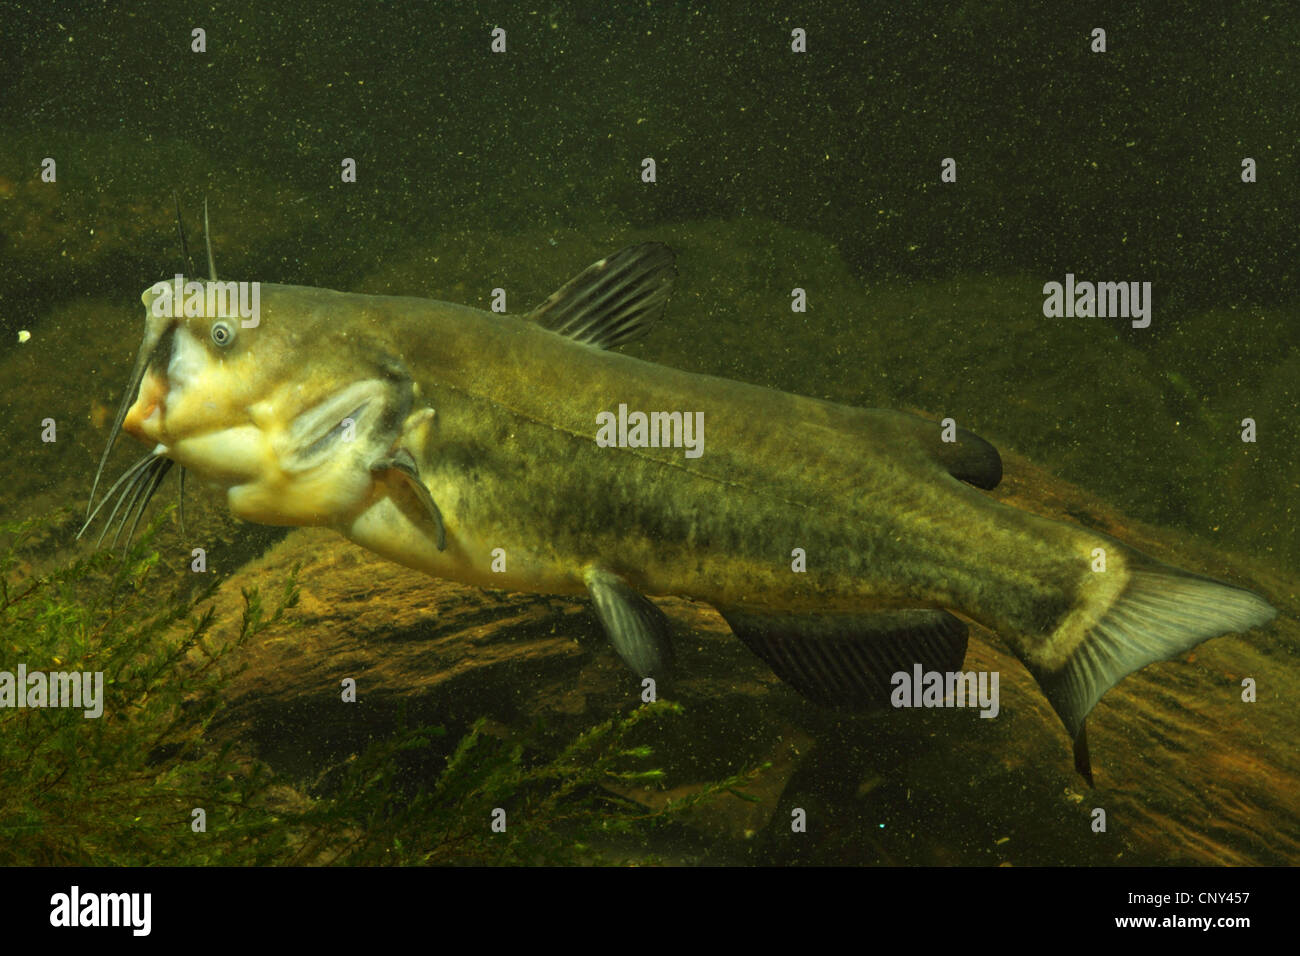 black bullhead (Ictalurus melas), with mouth wide opened - Stock Image